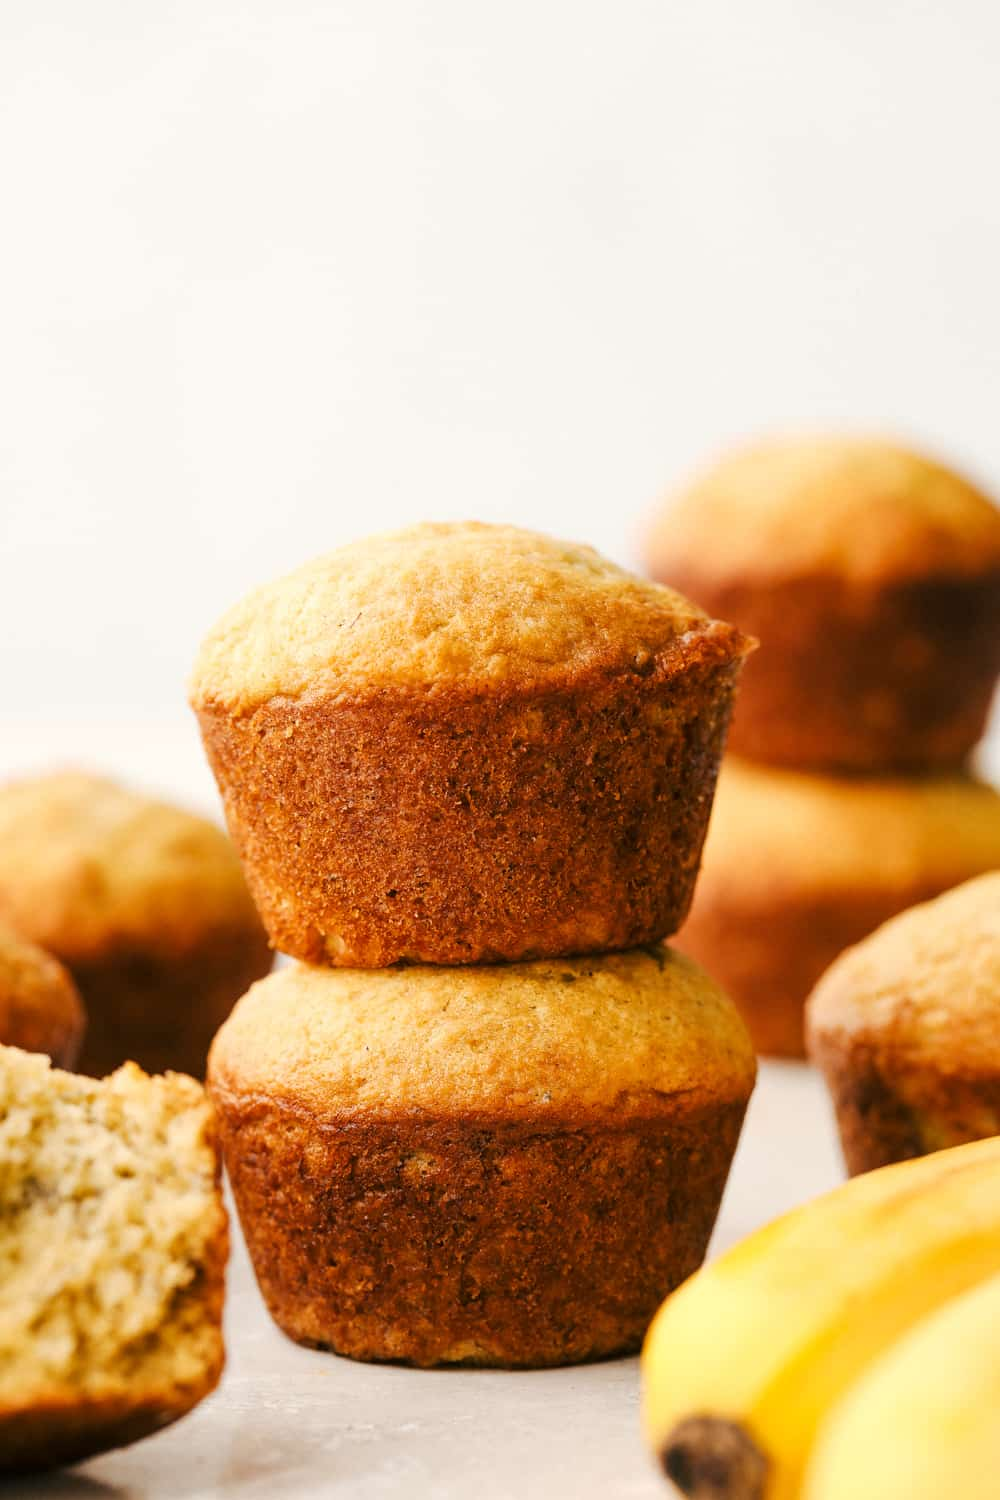 Two muffins stacked on top of eachother.